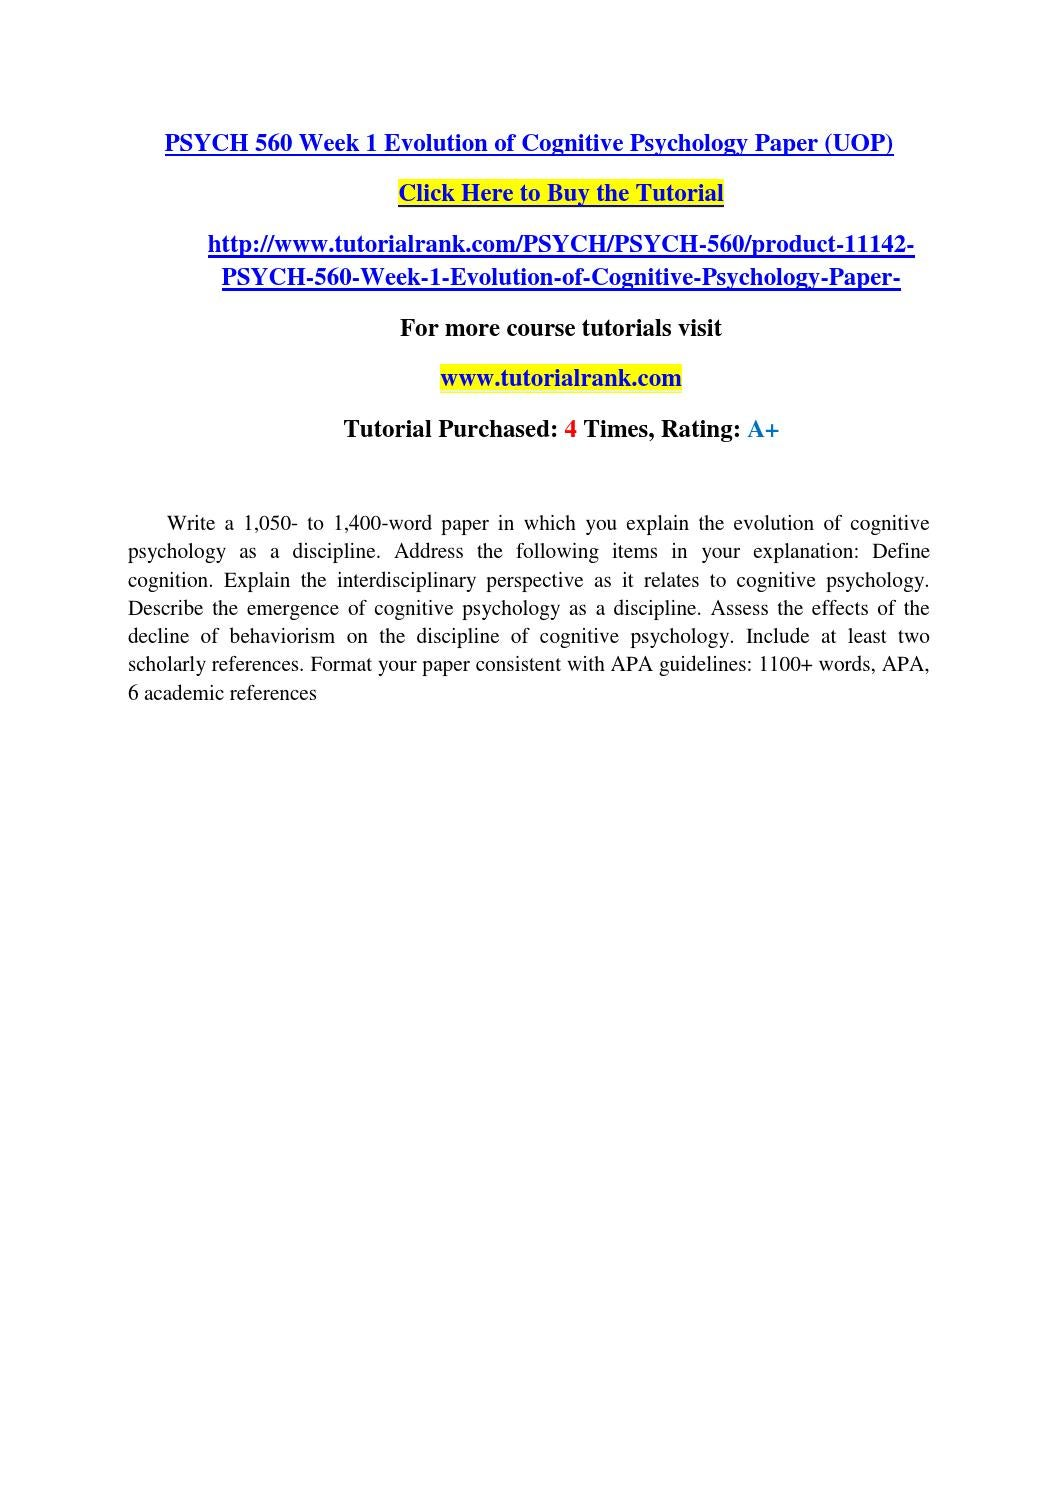 Psych 560 Week 1 Evolution Of Cognitive Psychology Paper Uop By